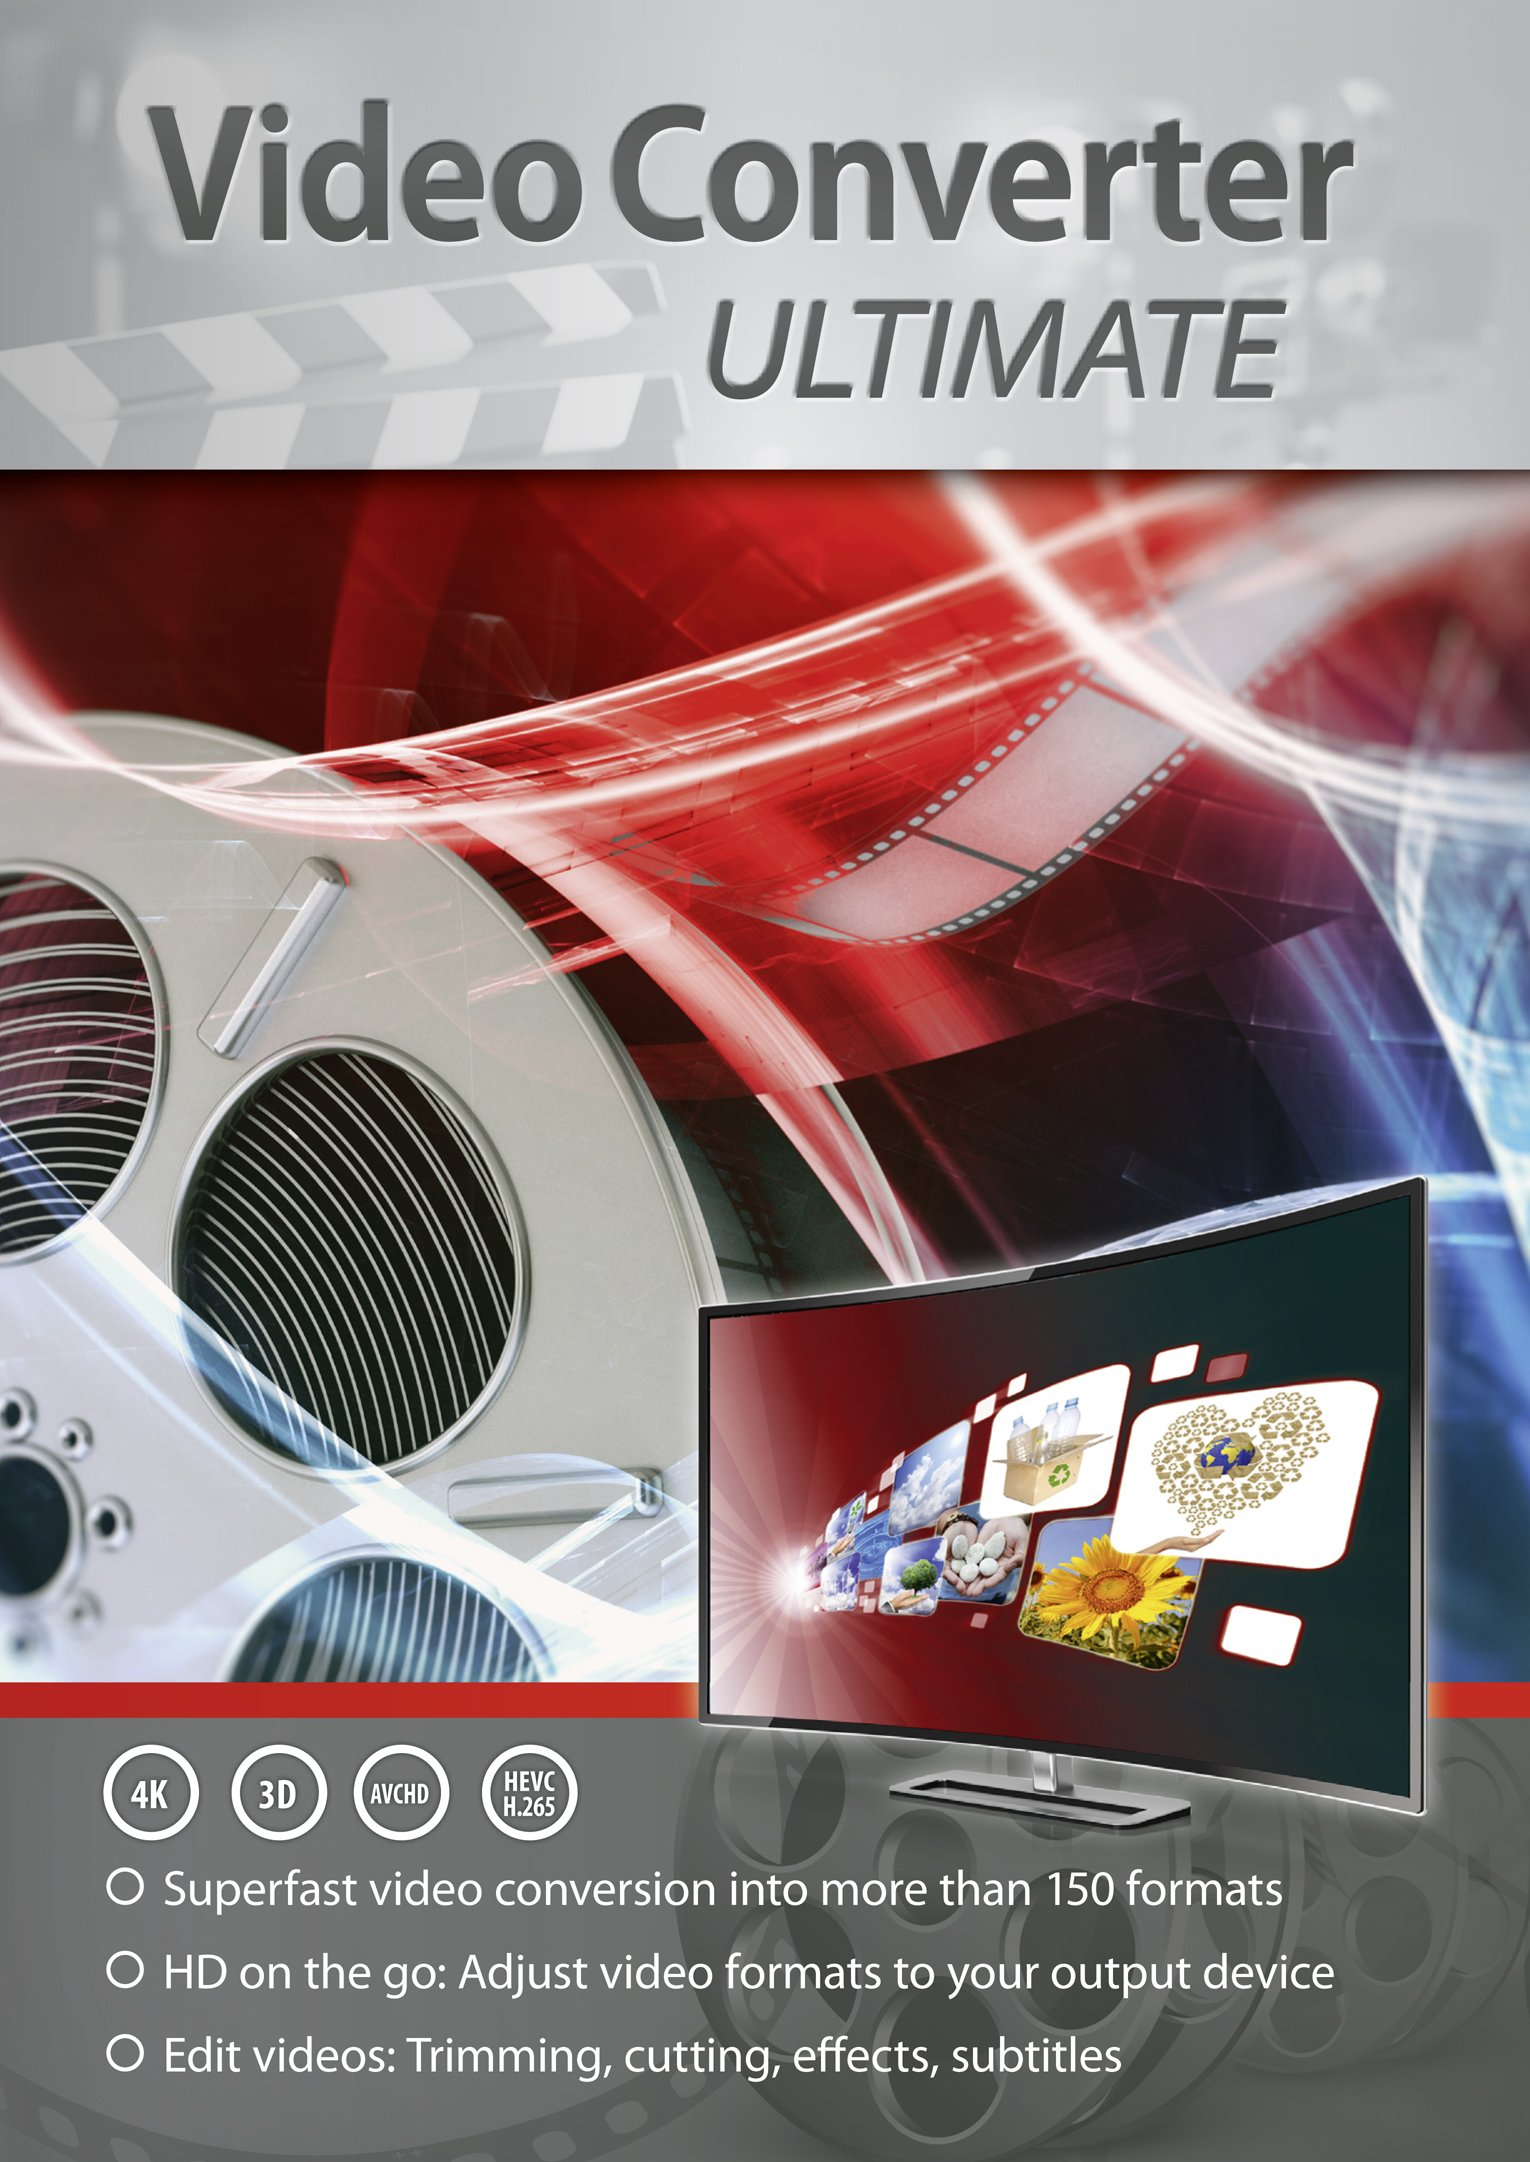 VideoConverter Ultimate - Superfast Video Conversion Into More than 150 Formats by Markt+Technik